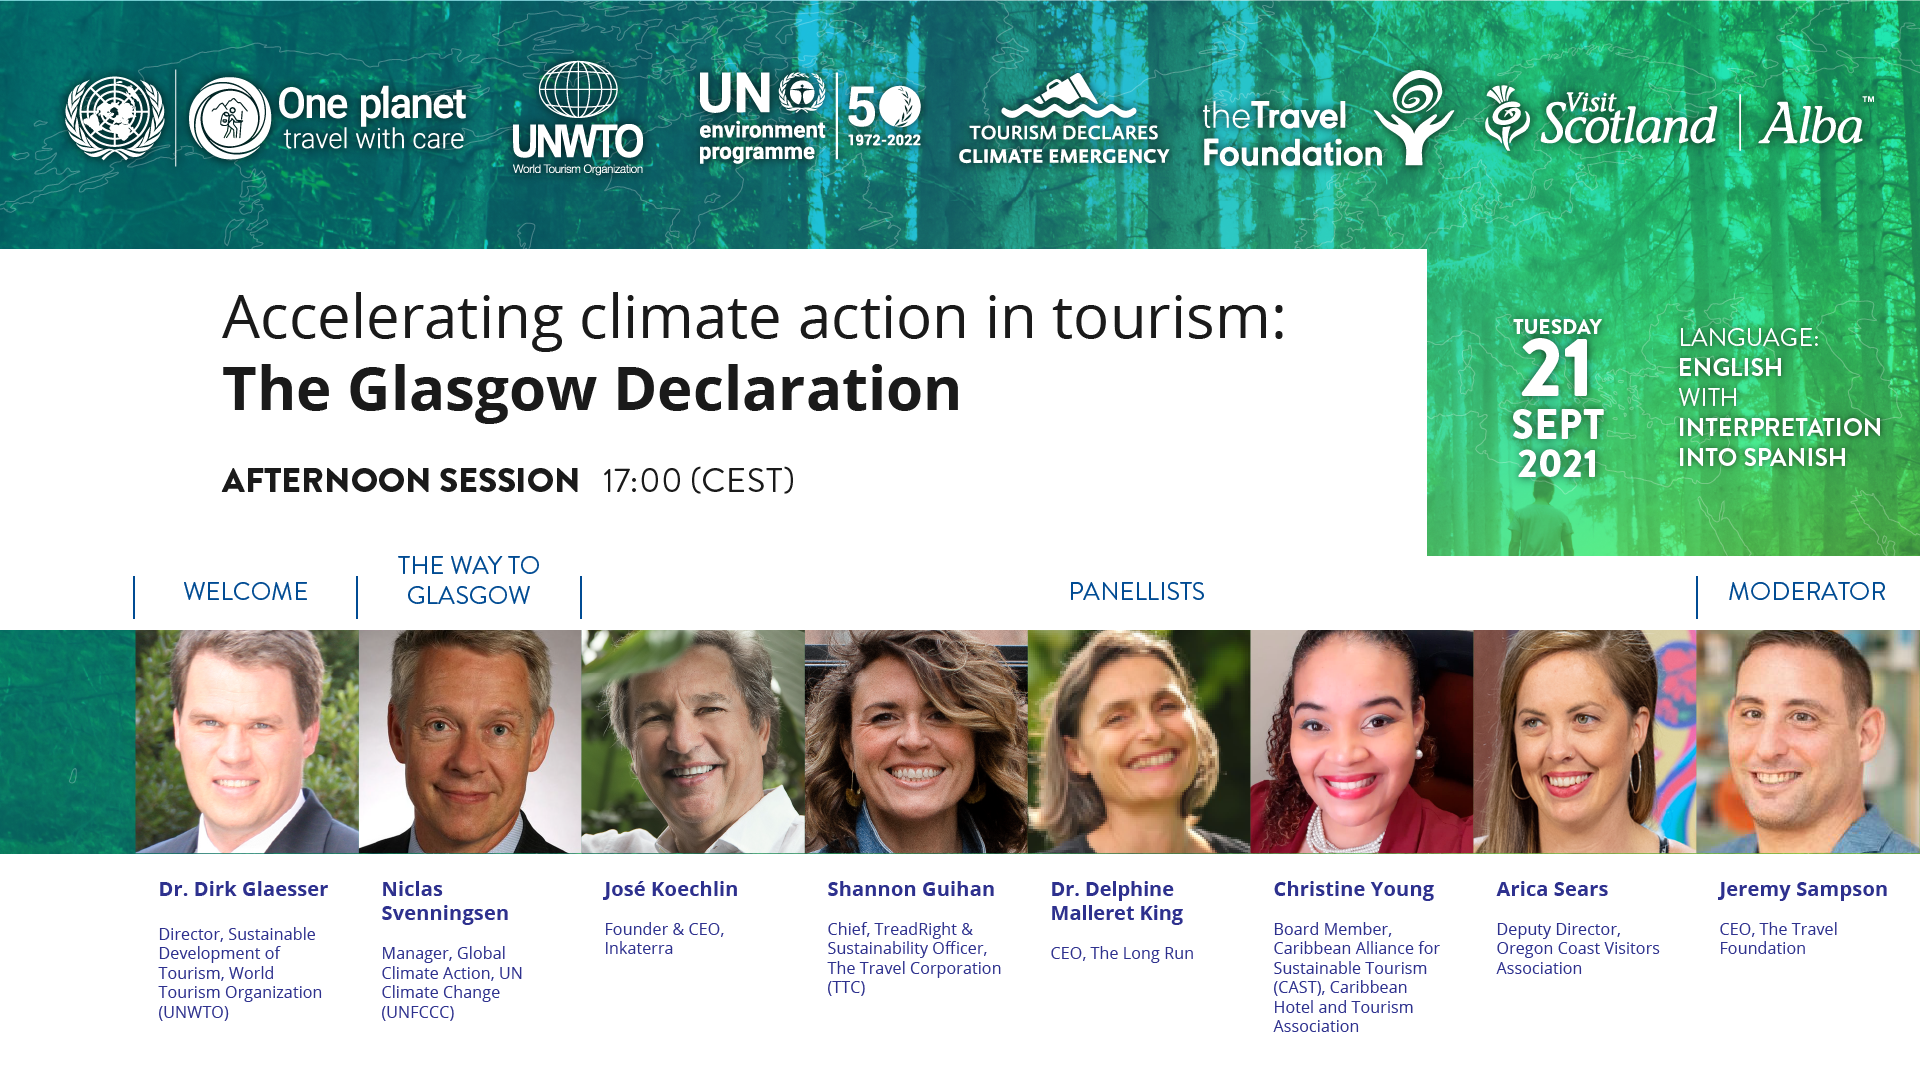 Glasgow declaration launch afternoon session